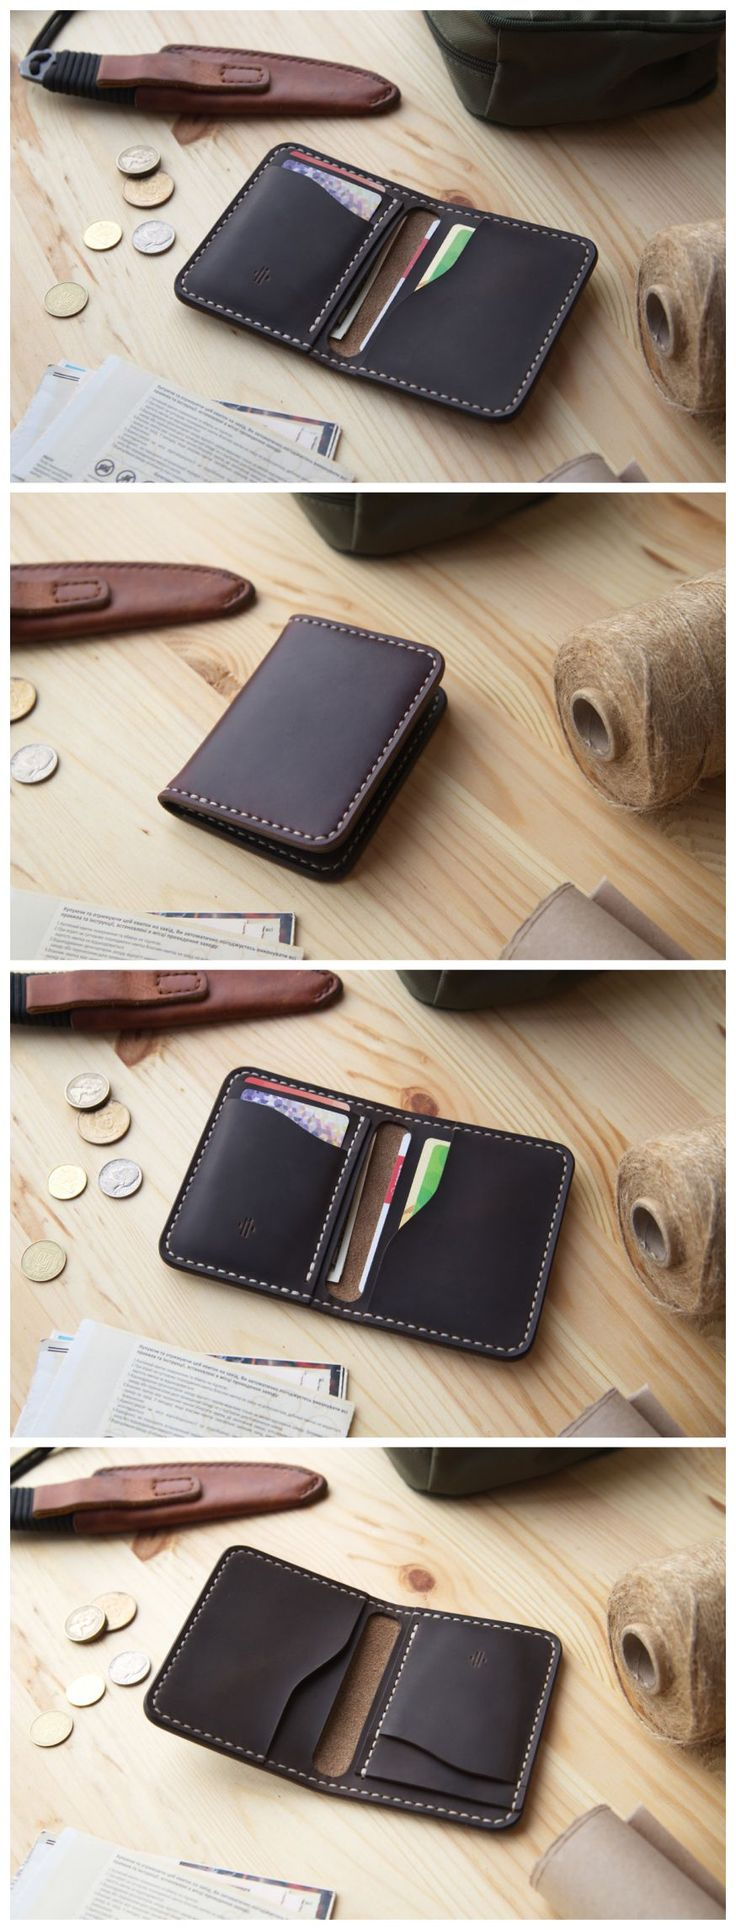 Horween Mens Wallet, Mens Leather Wallet, Minimal Leather Wallet, Leather wallet with 5 Pockets, Men's Leather Bifold Wallet  #manufacturabrand#accessories #wallet#leather#handmade#leathergoods#everydaycary#vegtanleather#handcraft#handstitched#leathercraft #vegtan#bifoldwallet#bifold#cardholder #cardwallet#horween#horweenwallet#chromexcel